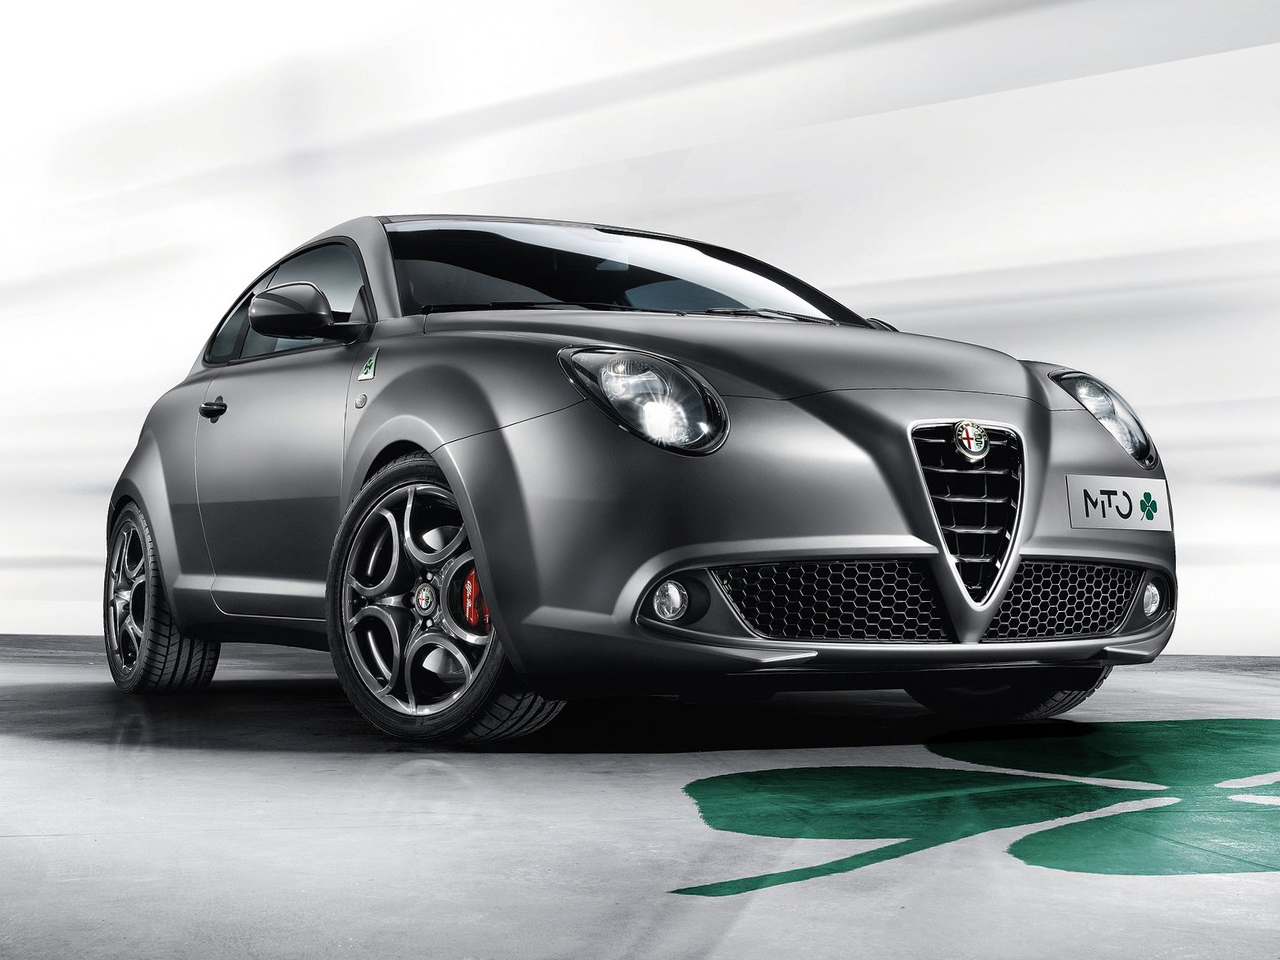 alfa romeo mito quadrifoglio verde 2017 1 4 tb 170cv tct veloce. Black Bedroom Furniture Sets. Home Design Ideas